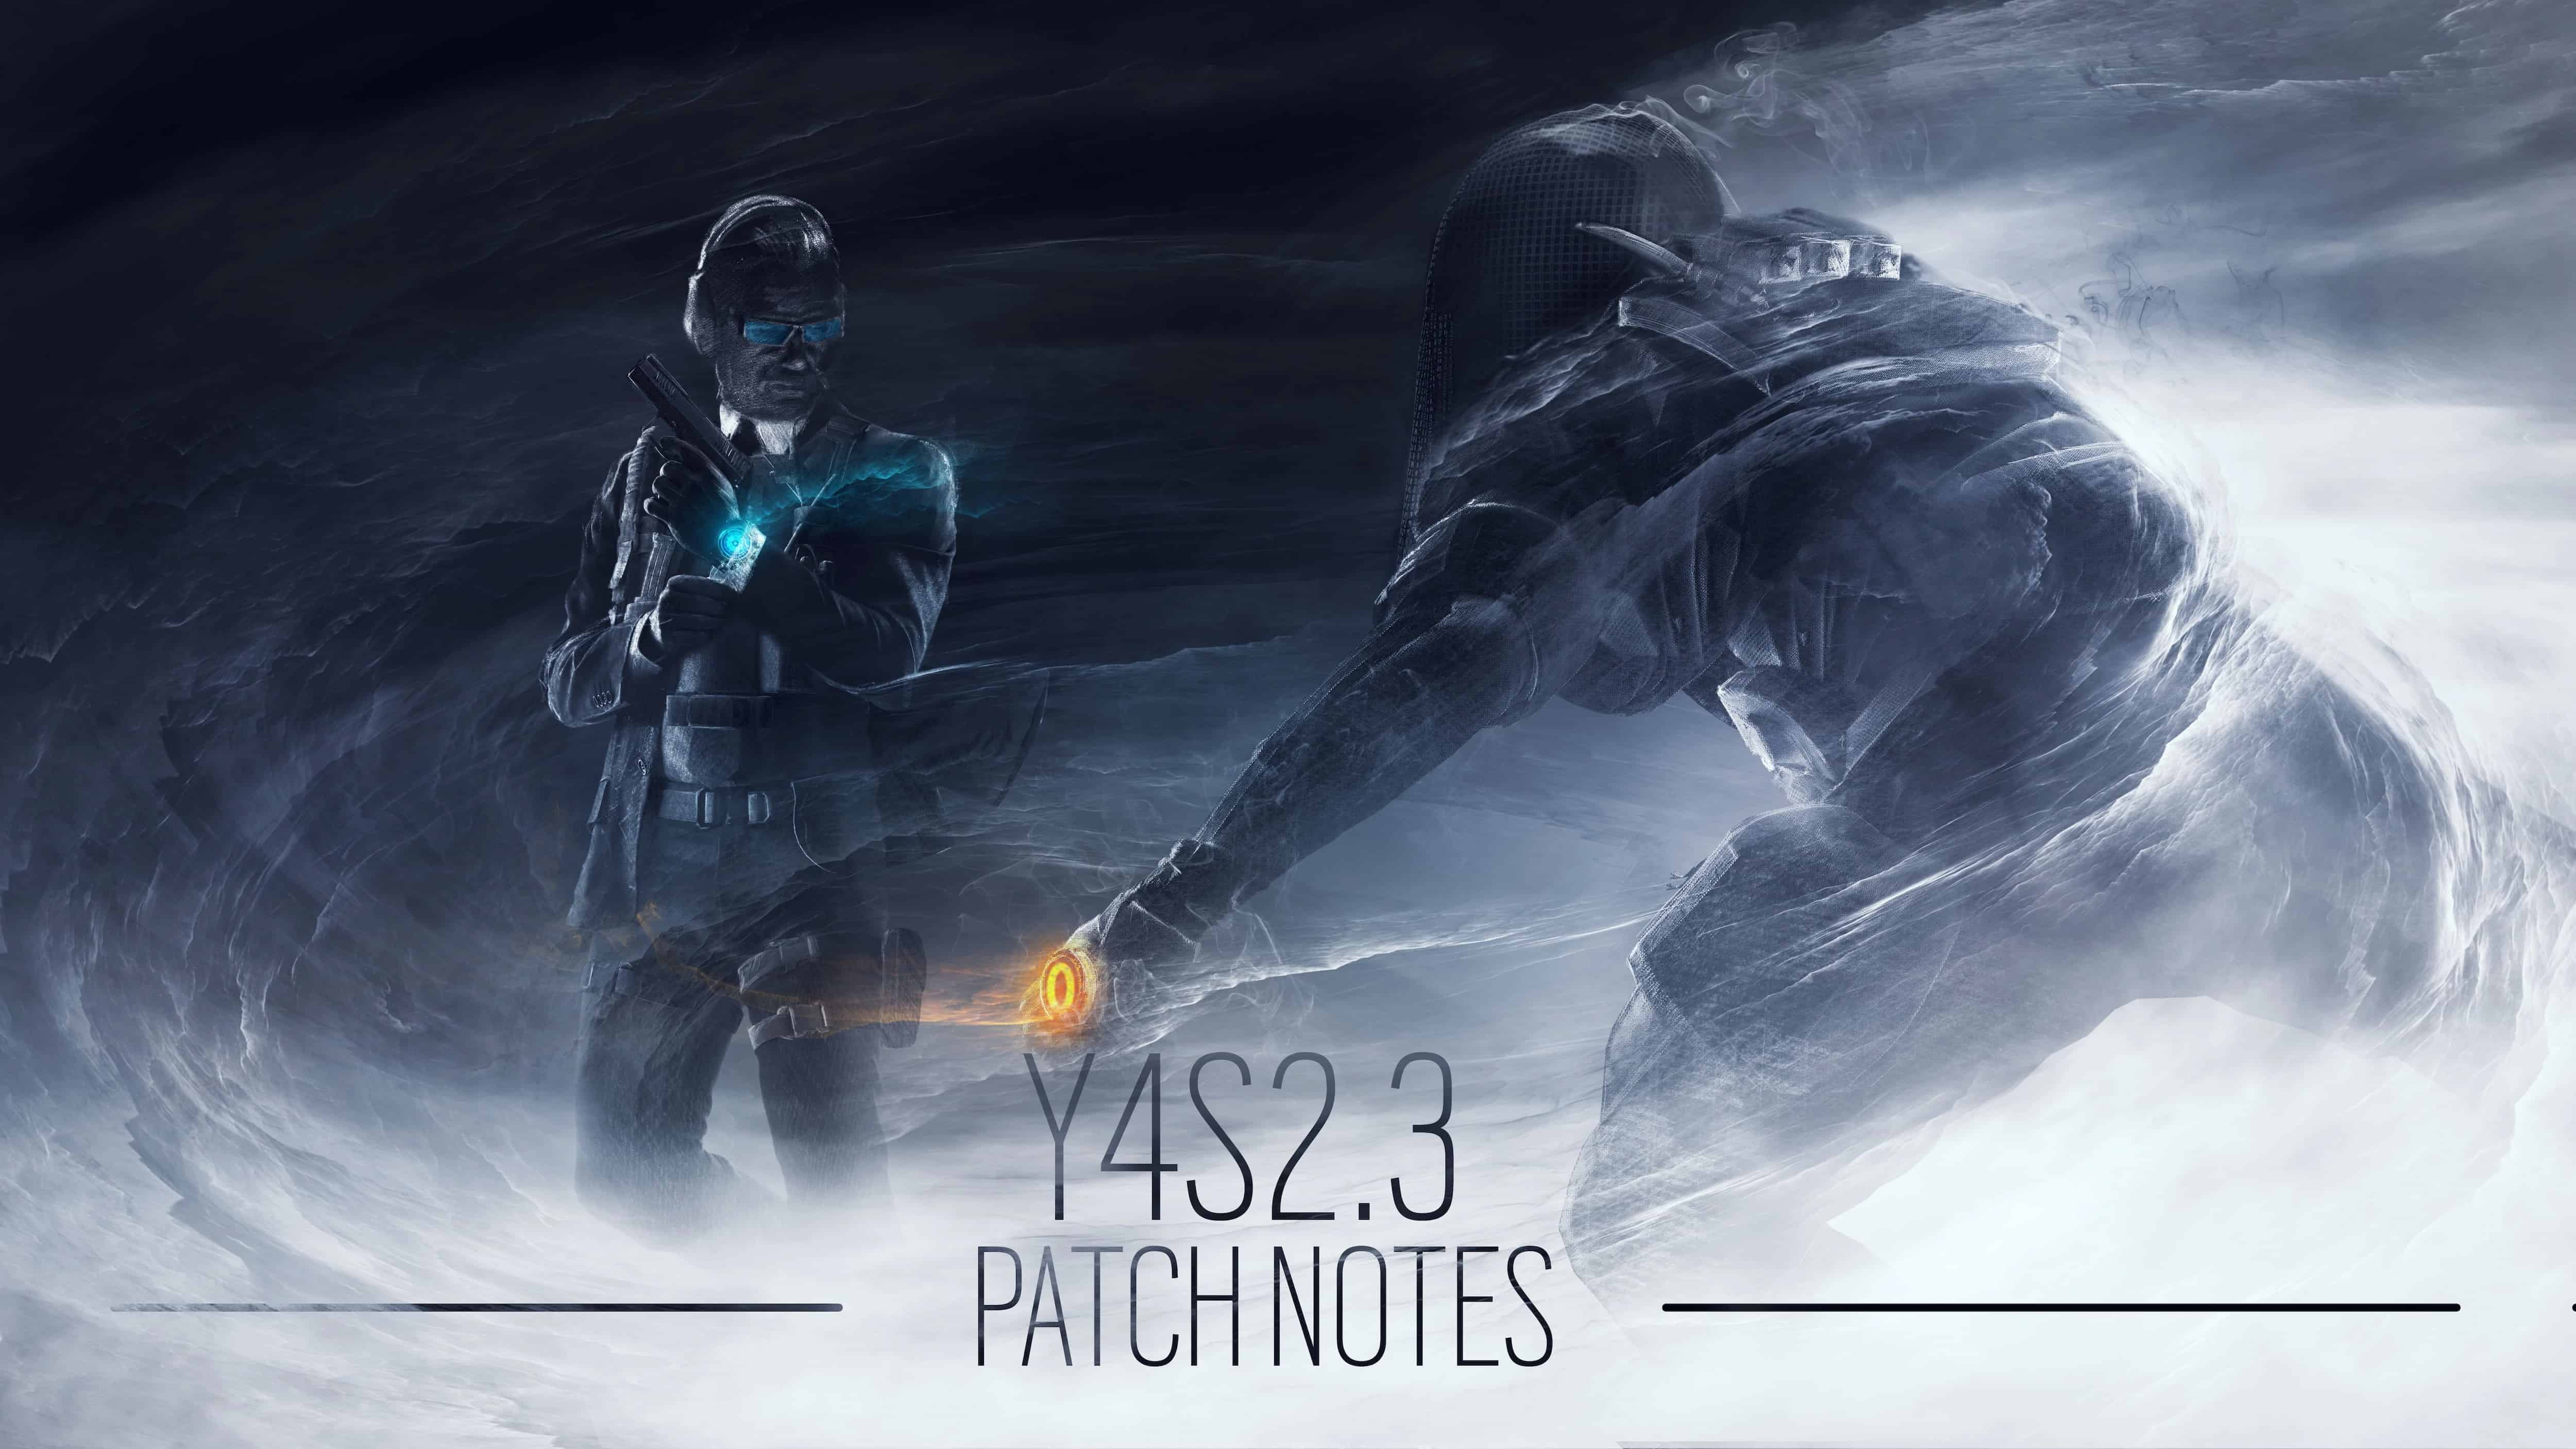 This picture is theofficial picture for the R6 - Patch Notes from 27.07.2019